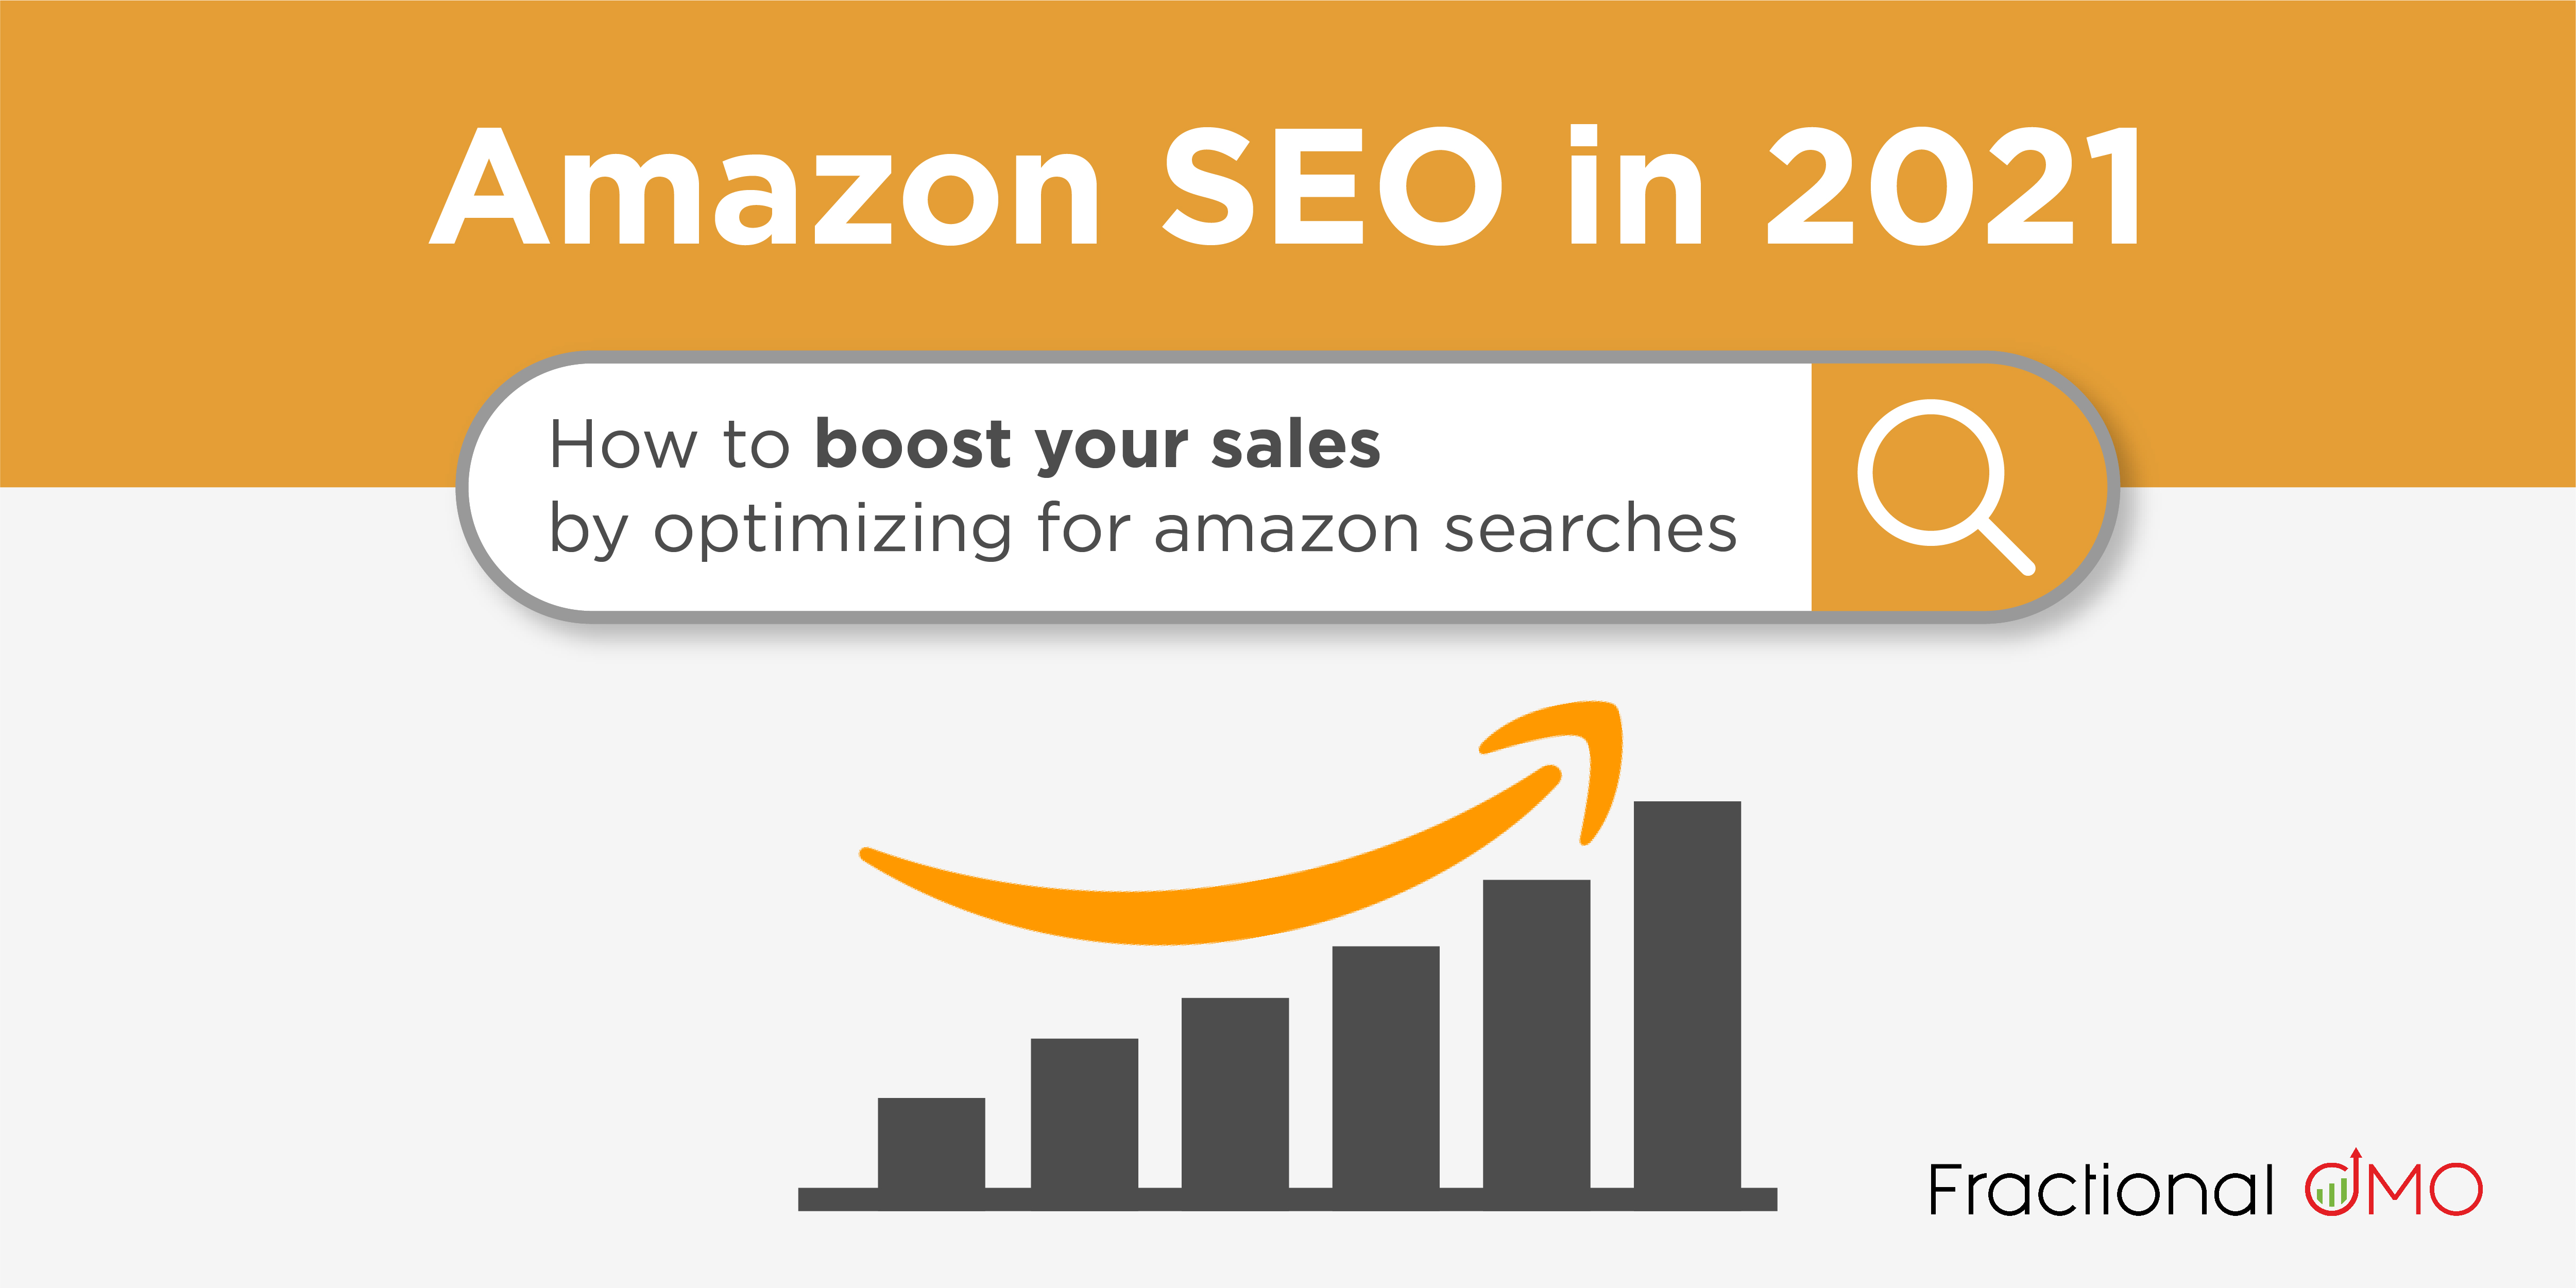 Amazon SEO in 2021: How to boost your sales by optimizing for Amazon searches